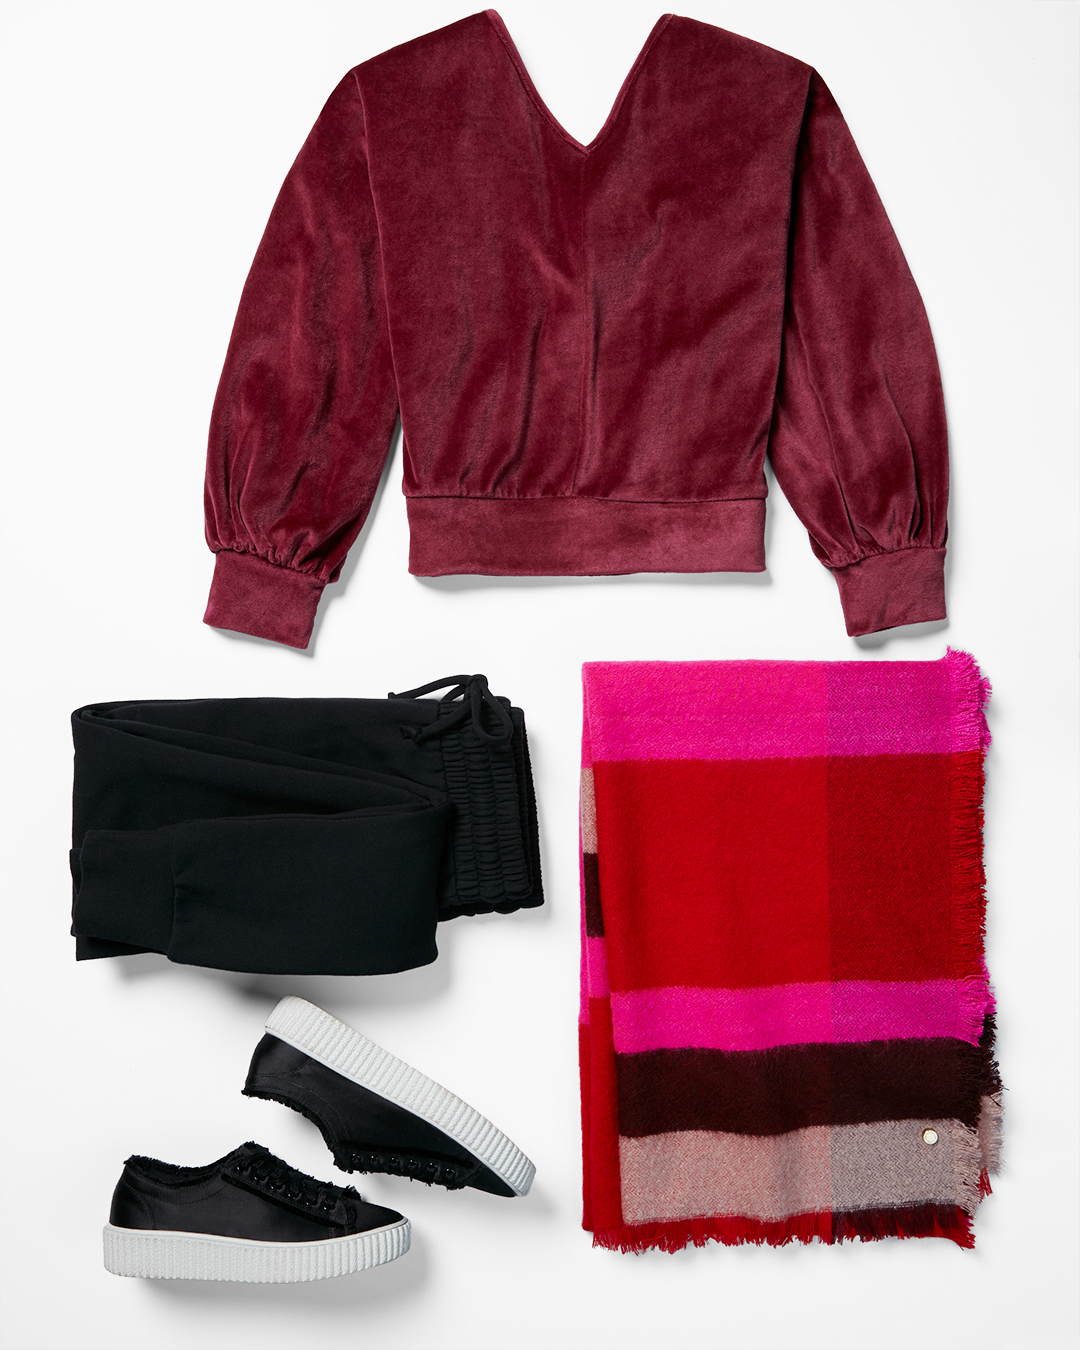 velour-sweatshirt-color-checked-blanket-scarf-joggers-black-sneakers